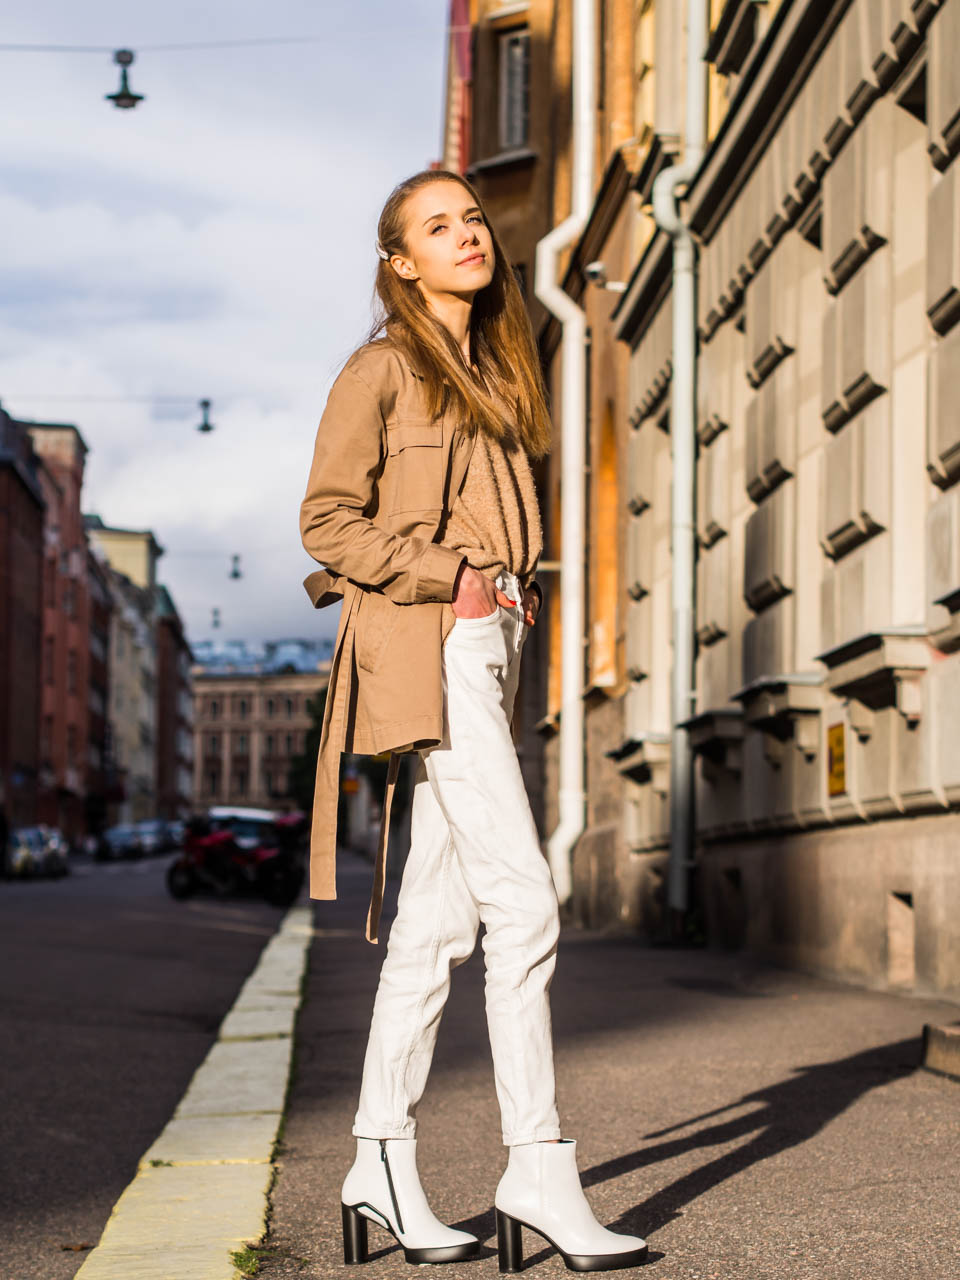 Fashion blogger autumn outfit photographed in golden hour in Helsinki - Muotiblogi syysmuoti-inspiraatio Helsinki